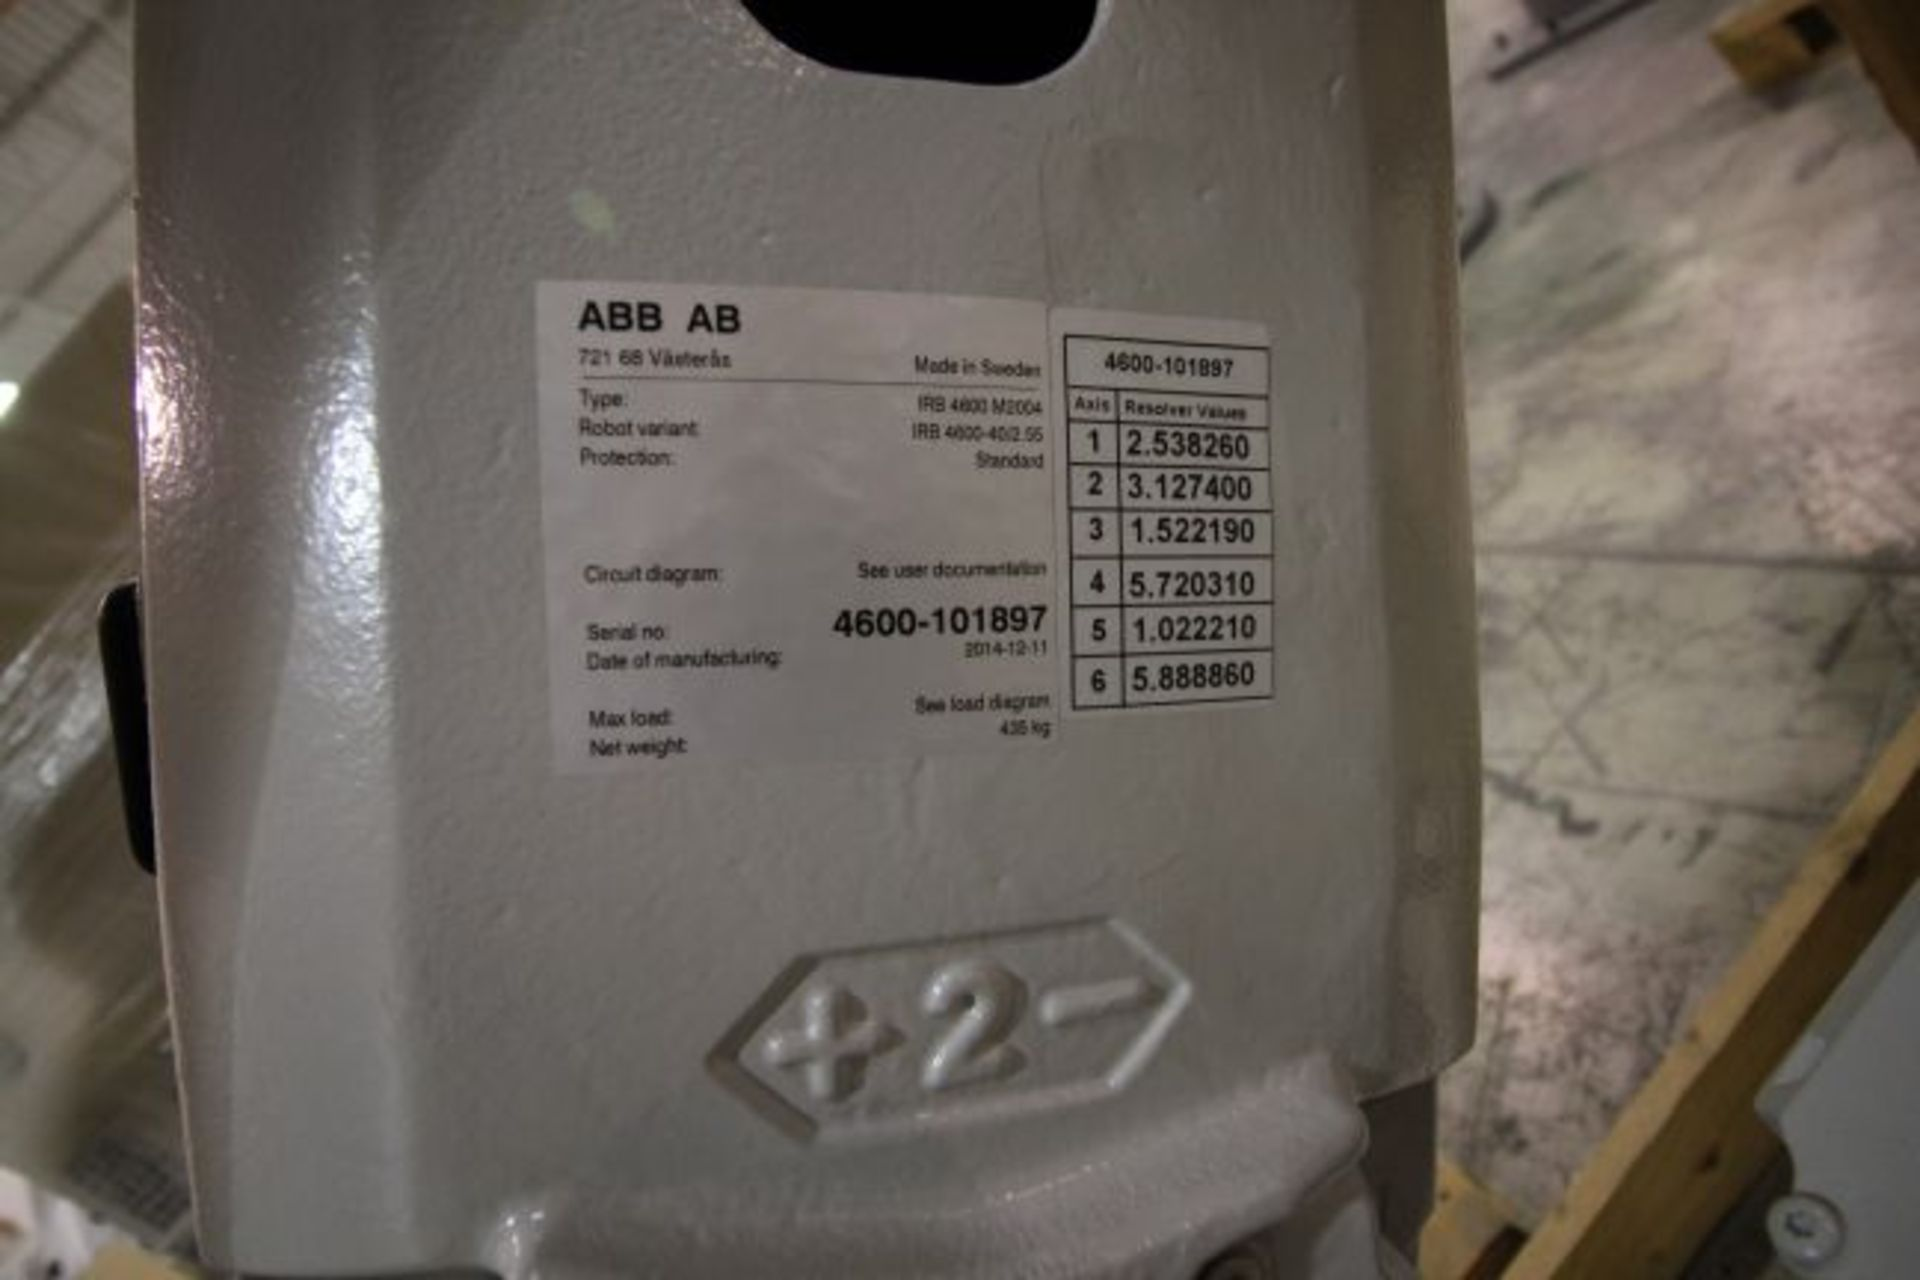 (NEW) ABB ROBOT IRB 4600 2.55/40KG WITH IRC5 CONTROLS, YEAR 2014, SN 101897 TEACH PENDANT& CABLES - Image 10 of 11